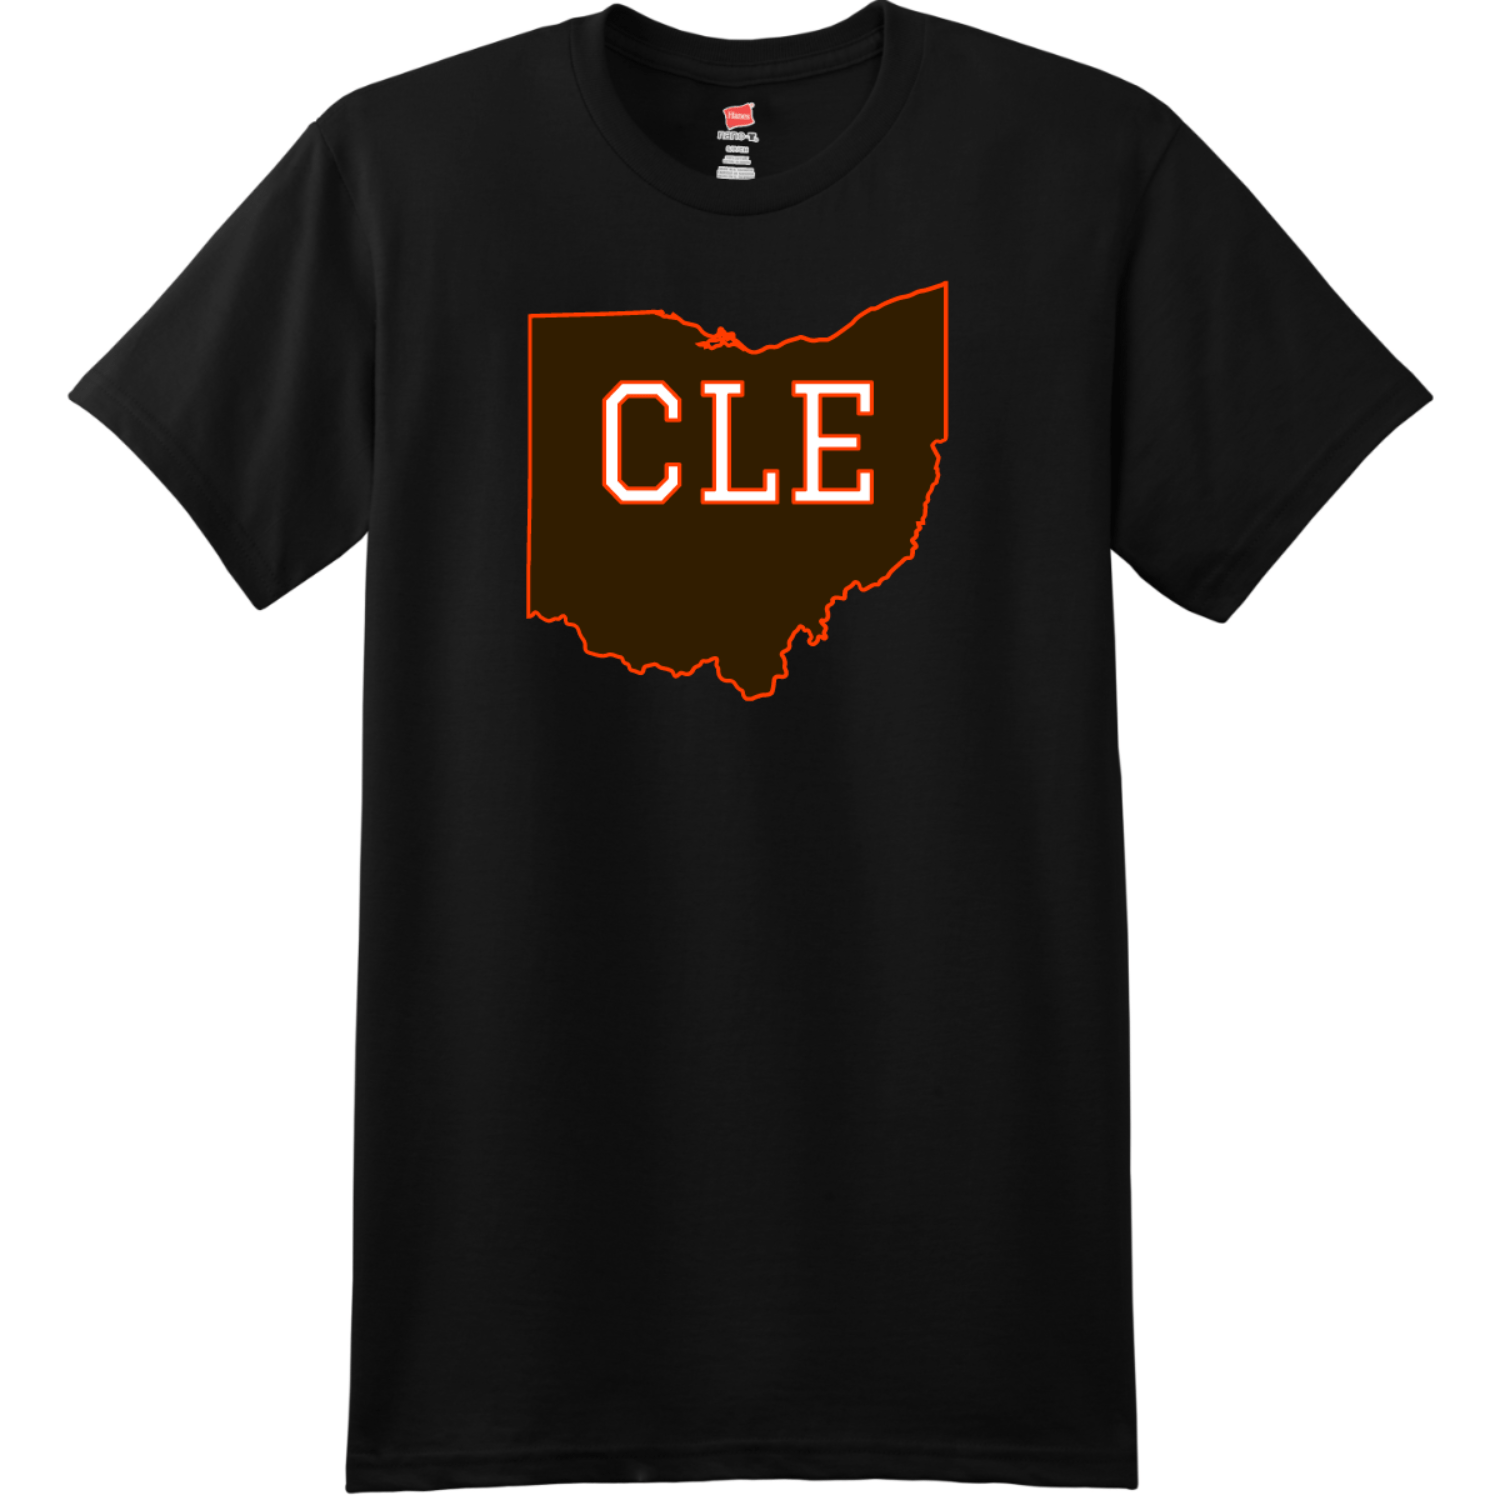 CLE Cleveland Ohio State T Shirt Black Hanes Nano 4980 Ringspun Cotton T Shirt